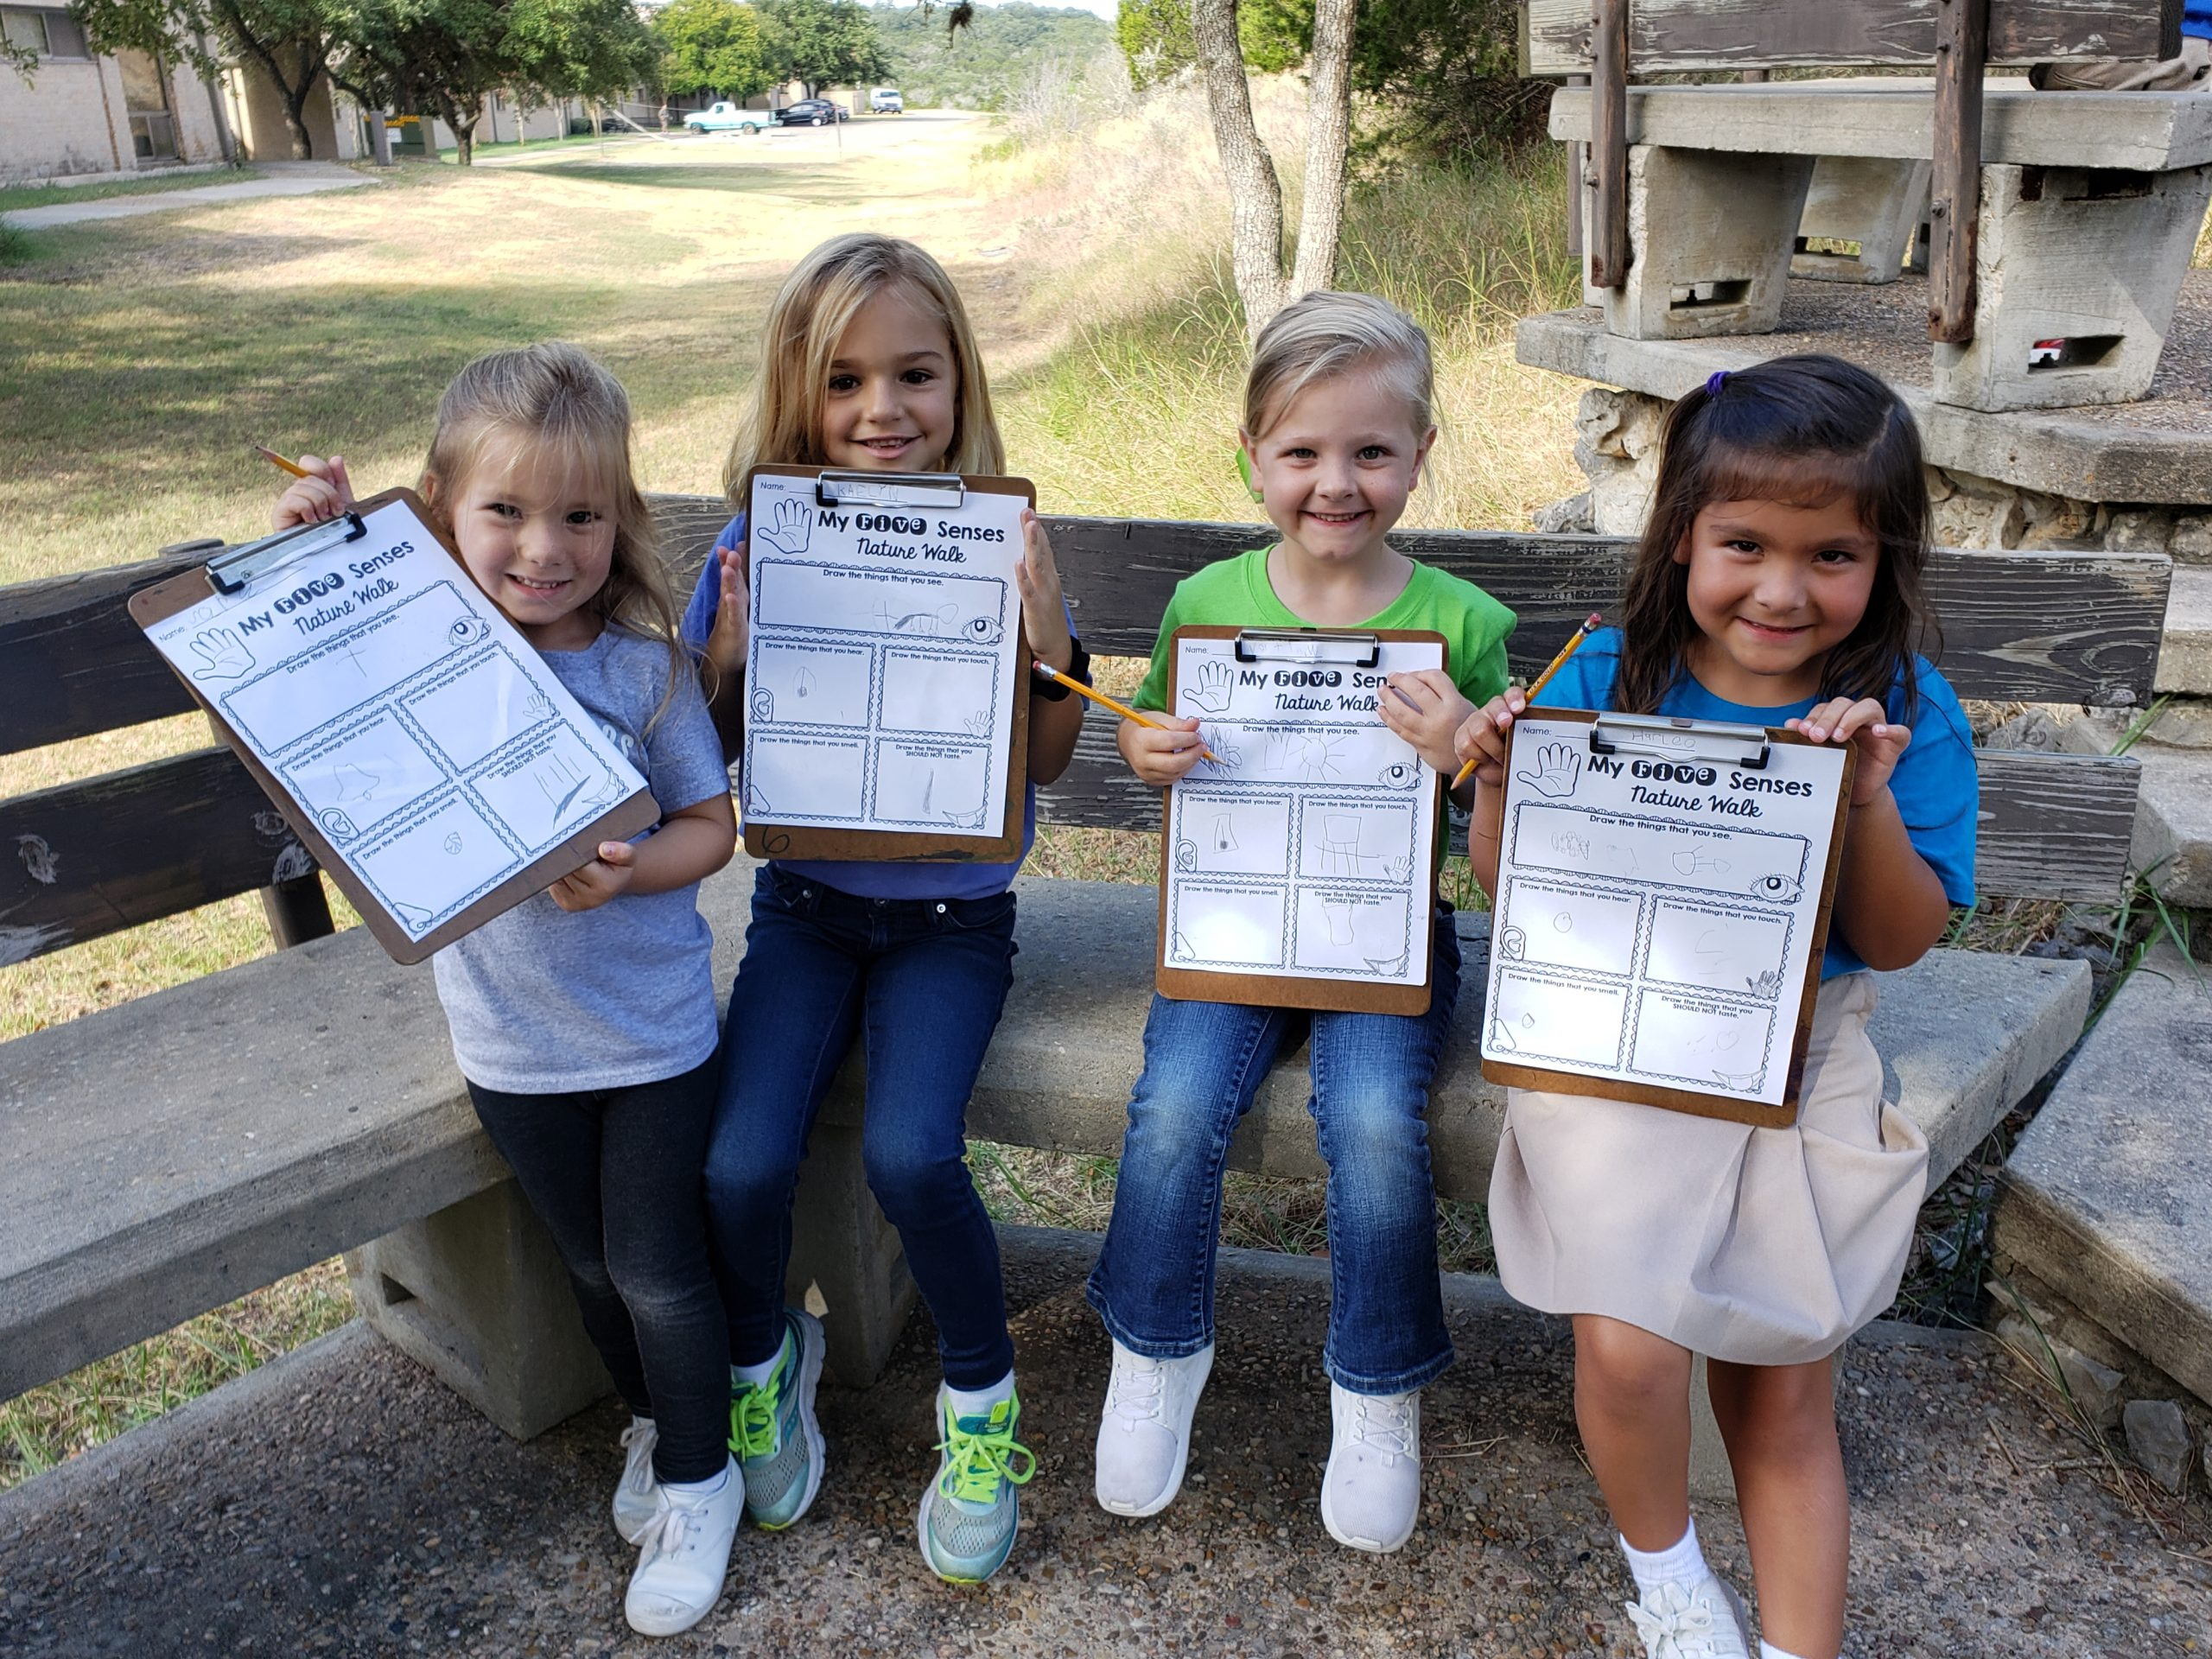 Lower School students showing off what they learned after a nature walk